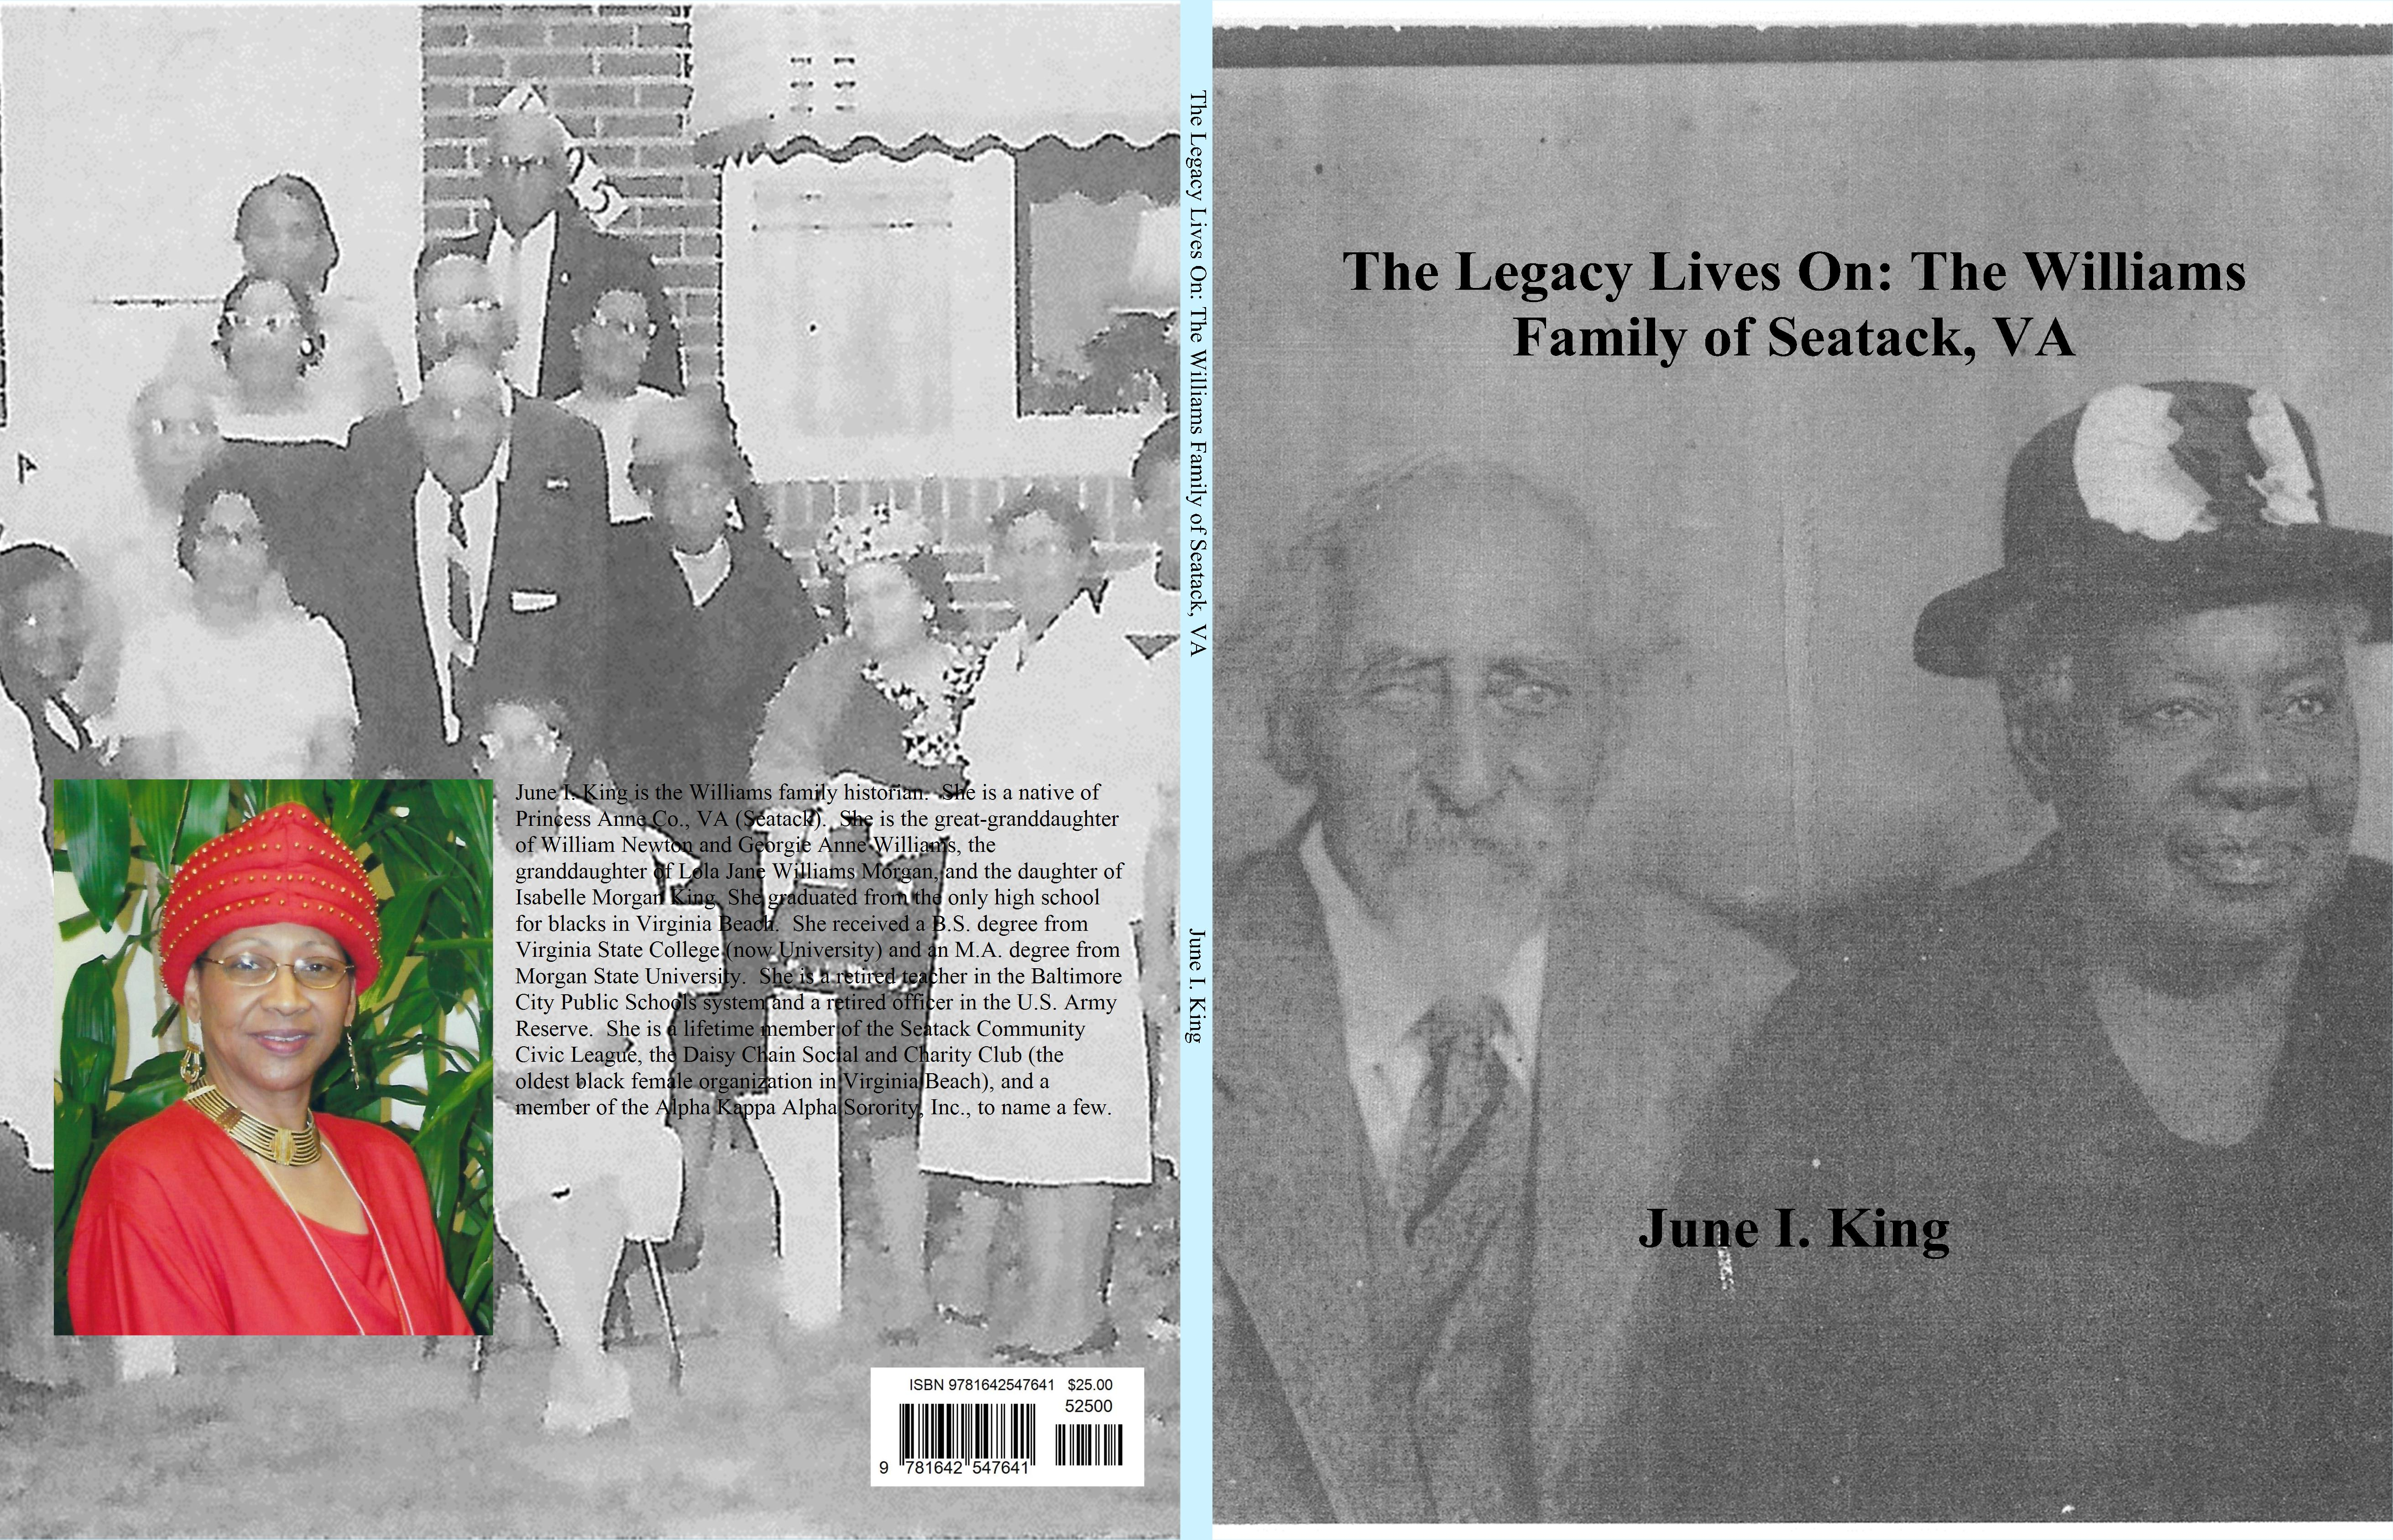 The Legacy Lives On: The Williams Family of Seatack, VA cover image